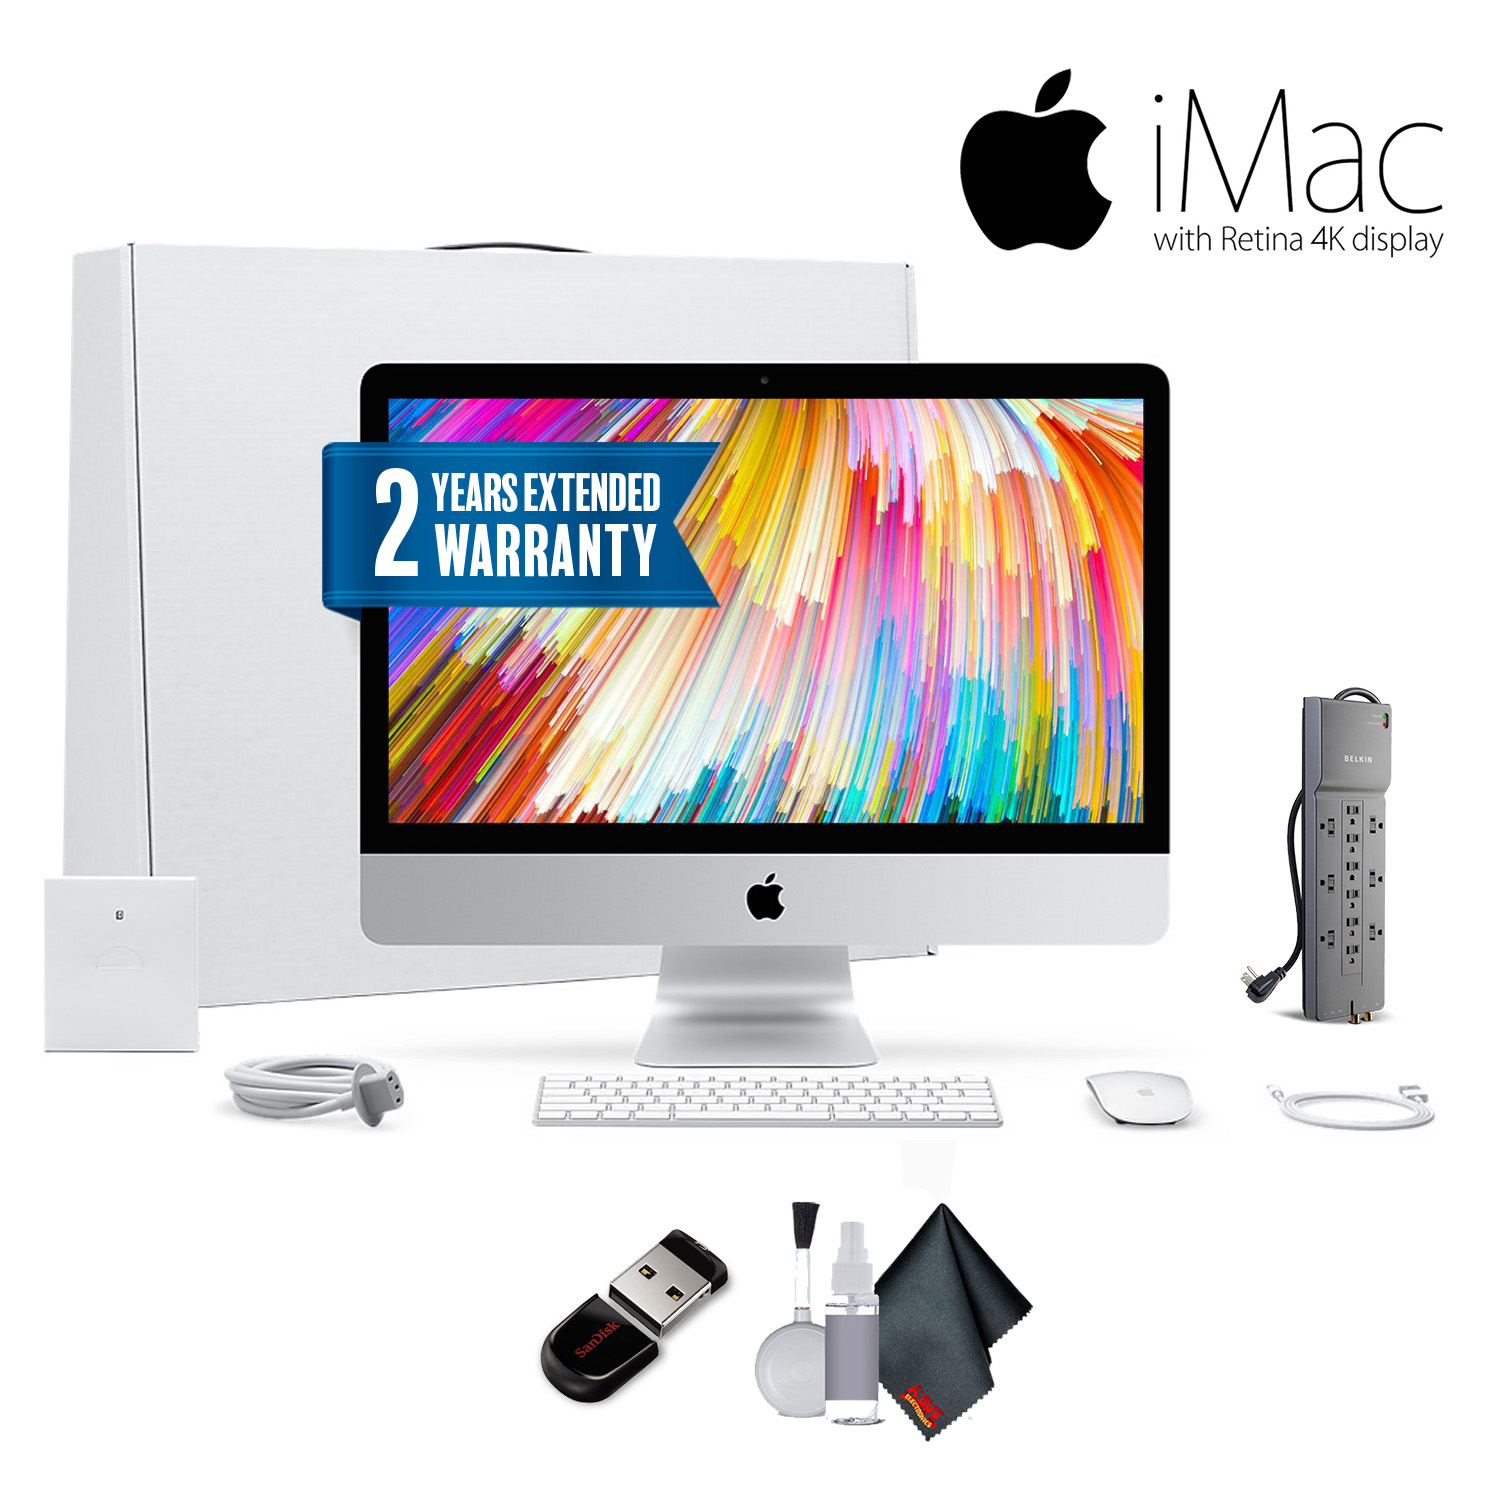 Apple iMac 21.5 Inch, 3.4GHz Intel Core i5, 8GB RAM, 1TB Fusion Drive, Silver Office Bundle With Warranty